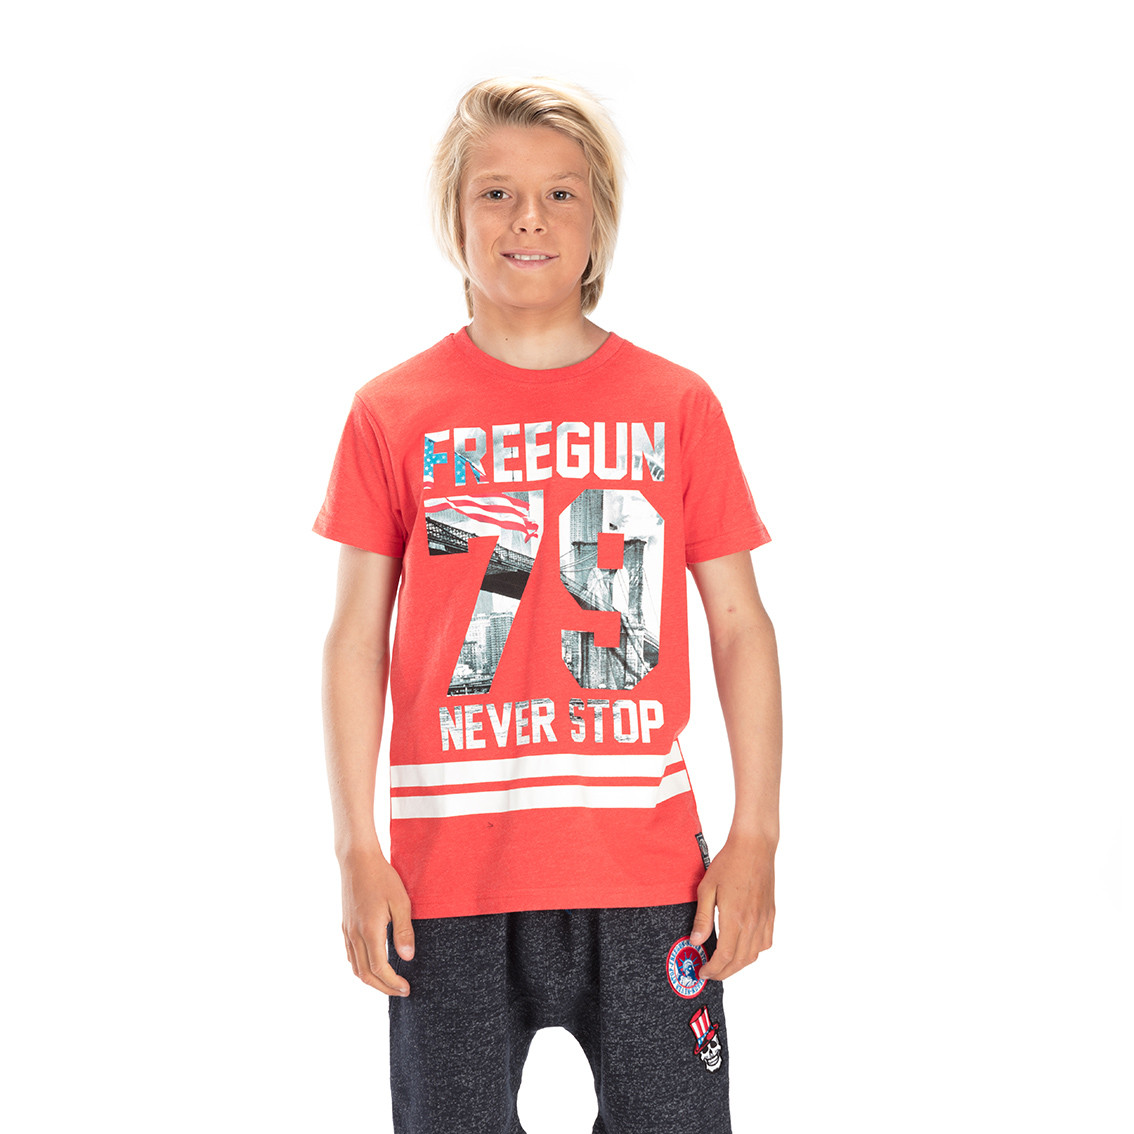 T-shirt freegun 79 rouge et blanc (photo)